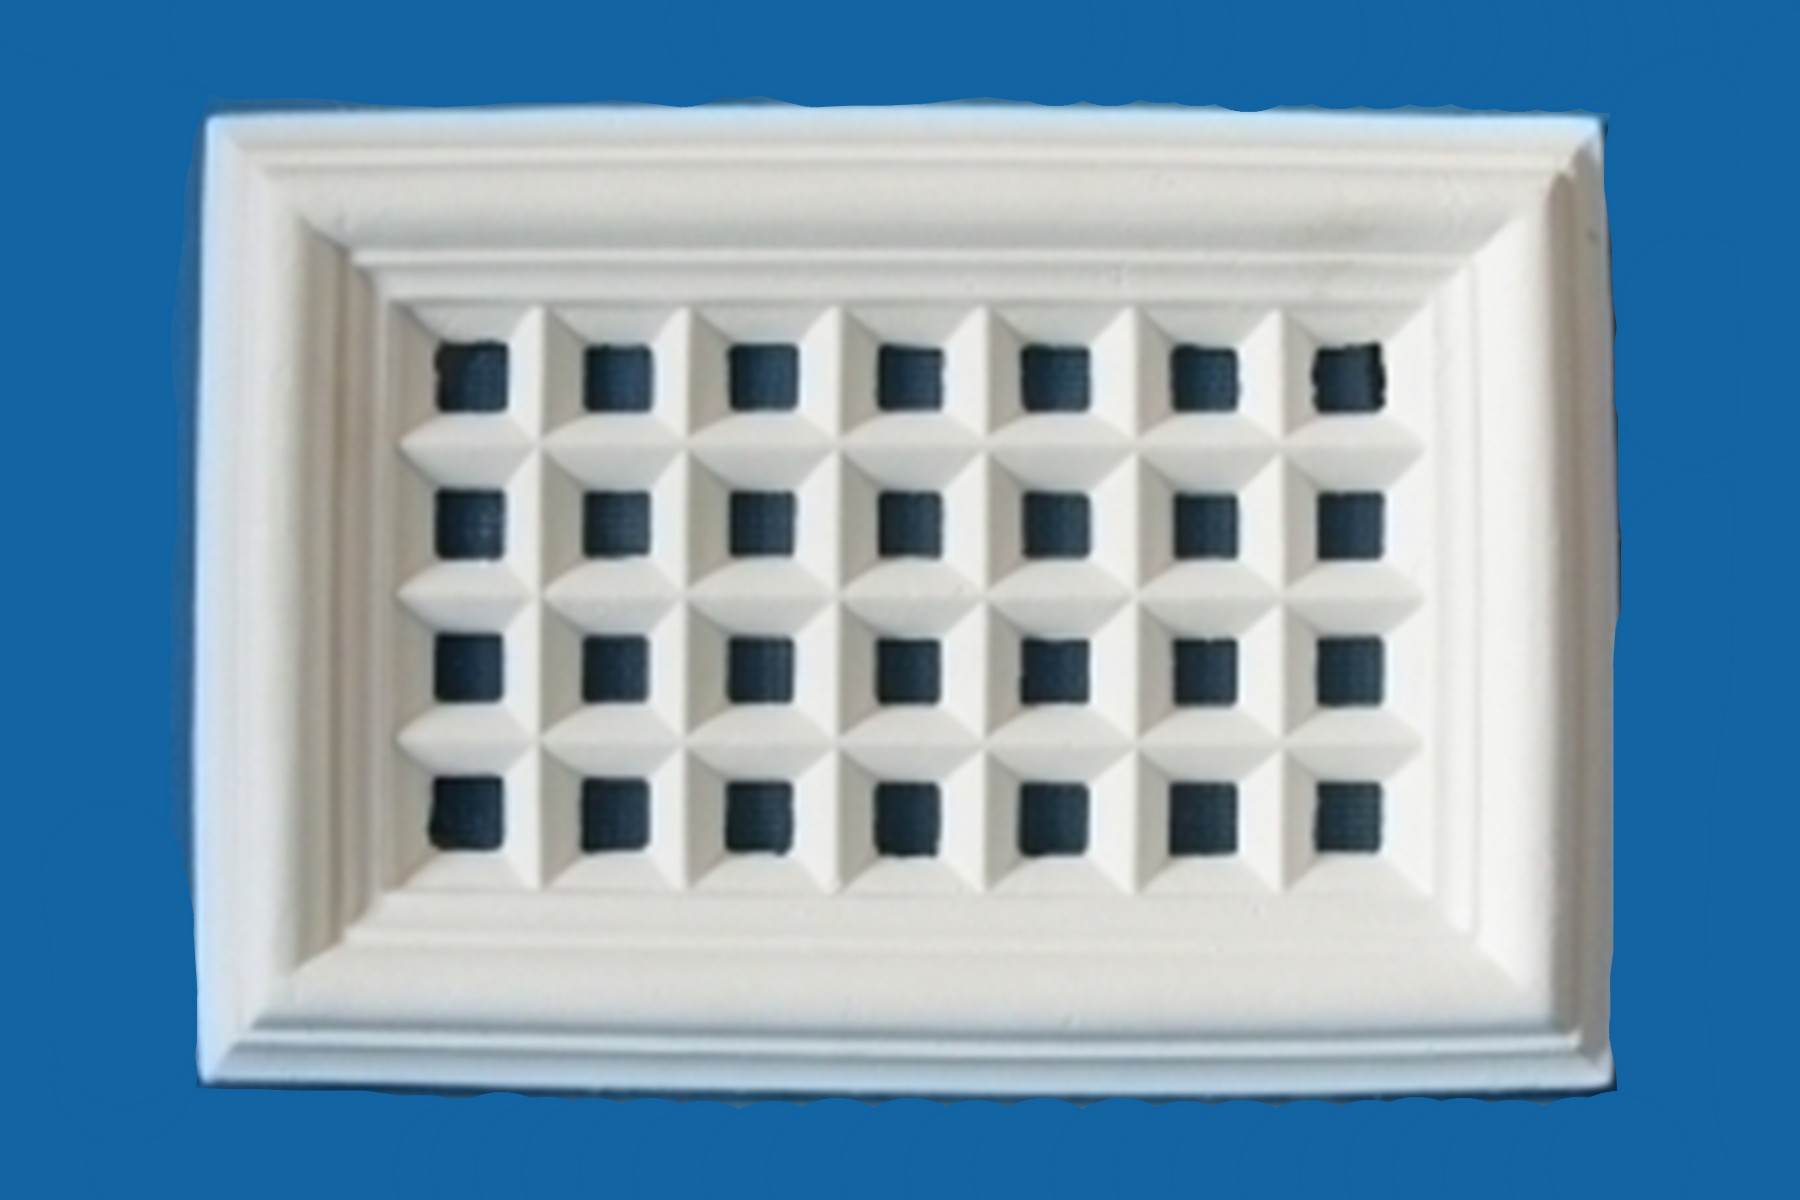 #1364A2 Plaster Vent 8 Brand New 7101 Wall Registers And Grilles images with 1800x1200 px on helpvideos.info - Air Conditioners, Air Coolers and more